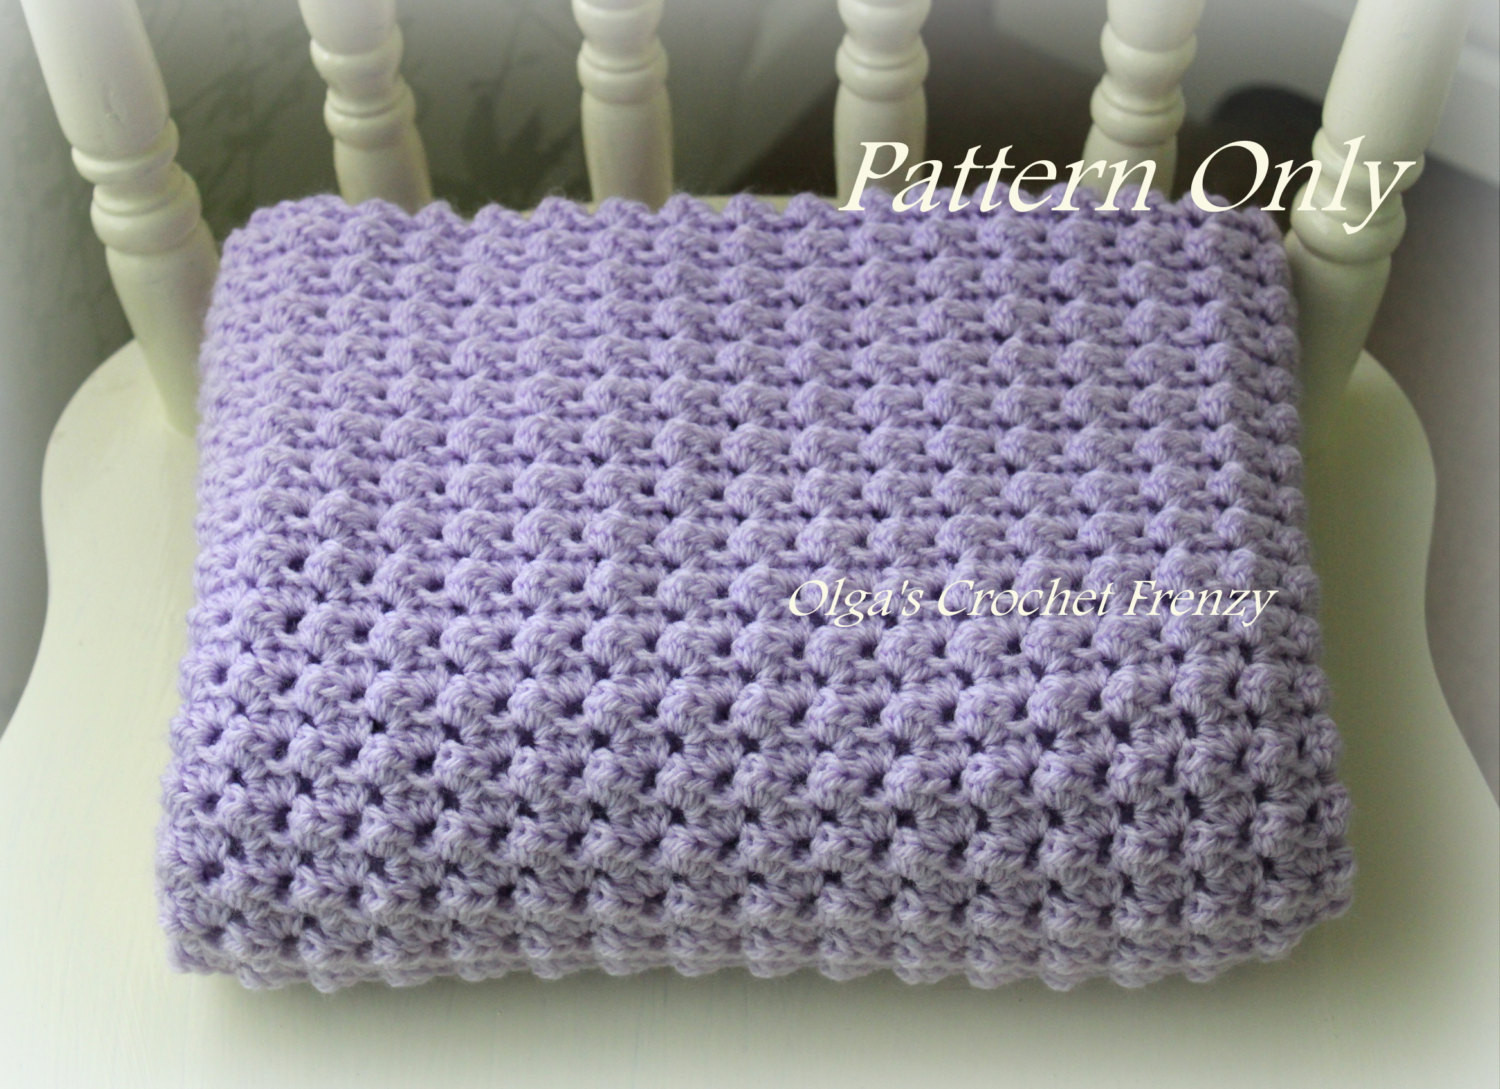 Easy Baby Blanket Awesome Crochet Baby Blanket Pattern Baby Afghan Easy to Make for Of Marvelous 42 Images Easy Baby Blanket